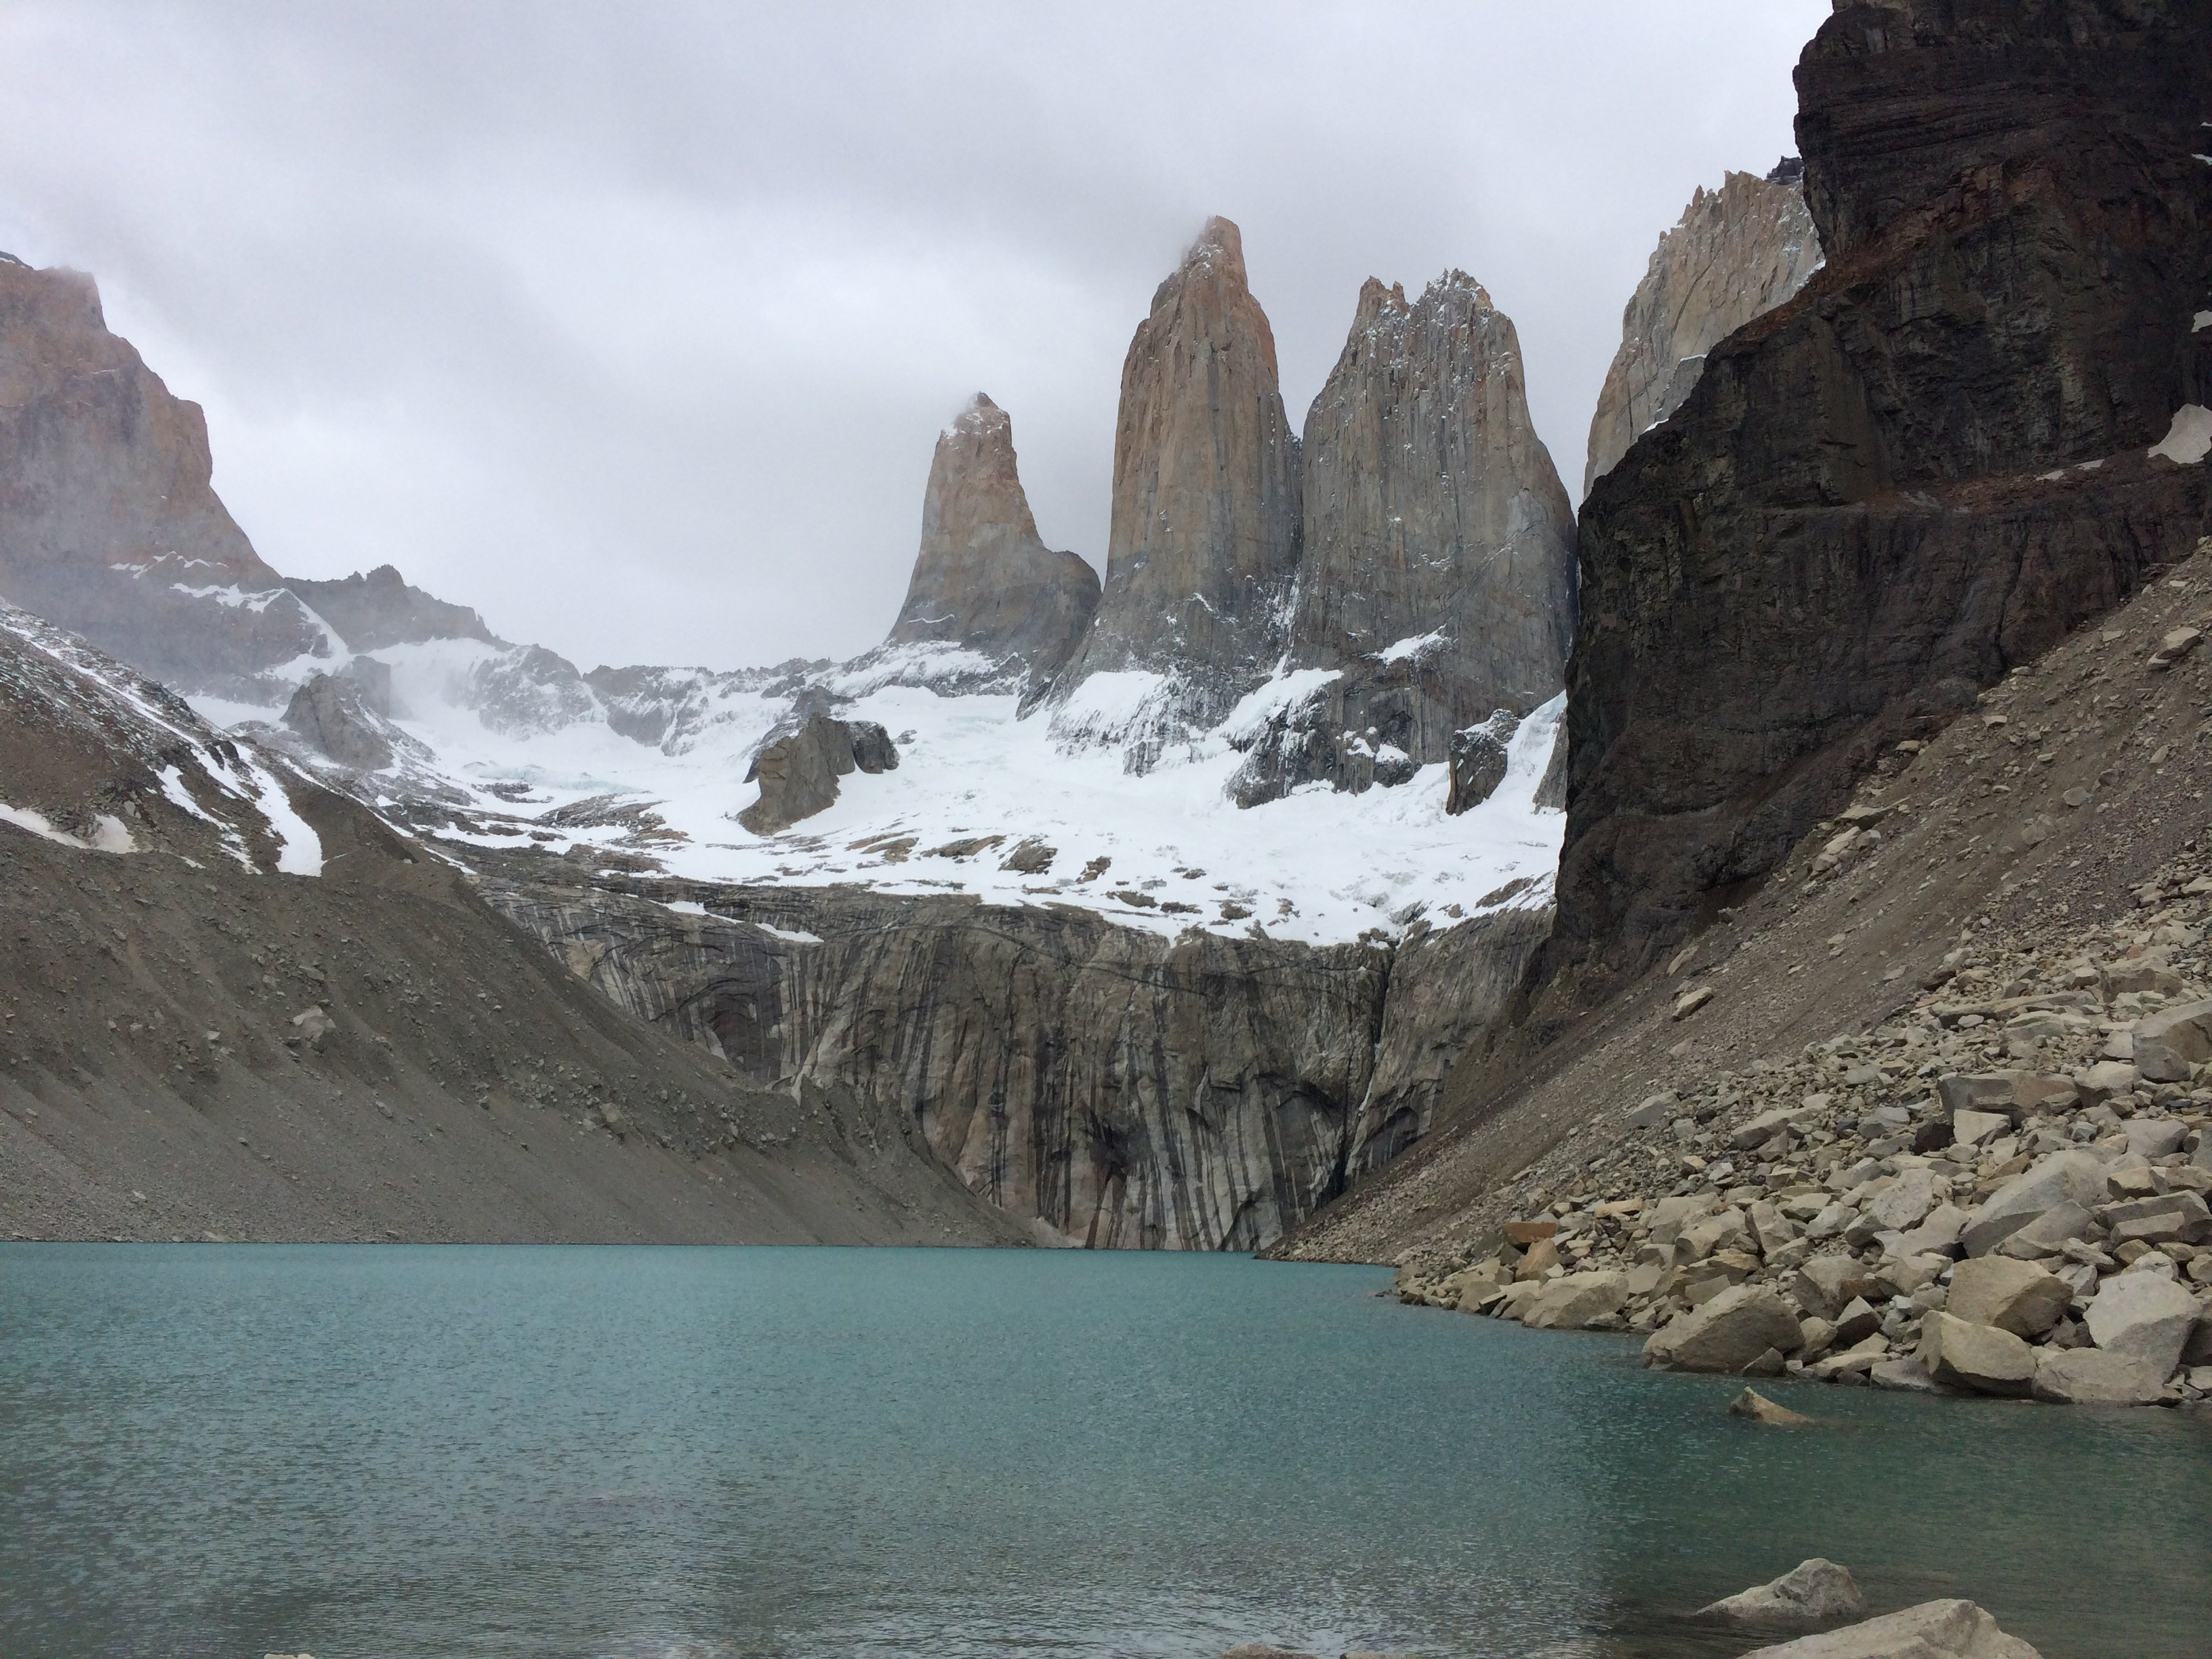 Karen's eco camp based W Trek in Torres del Paine